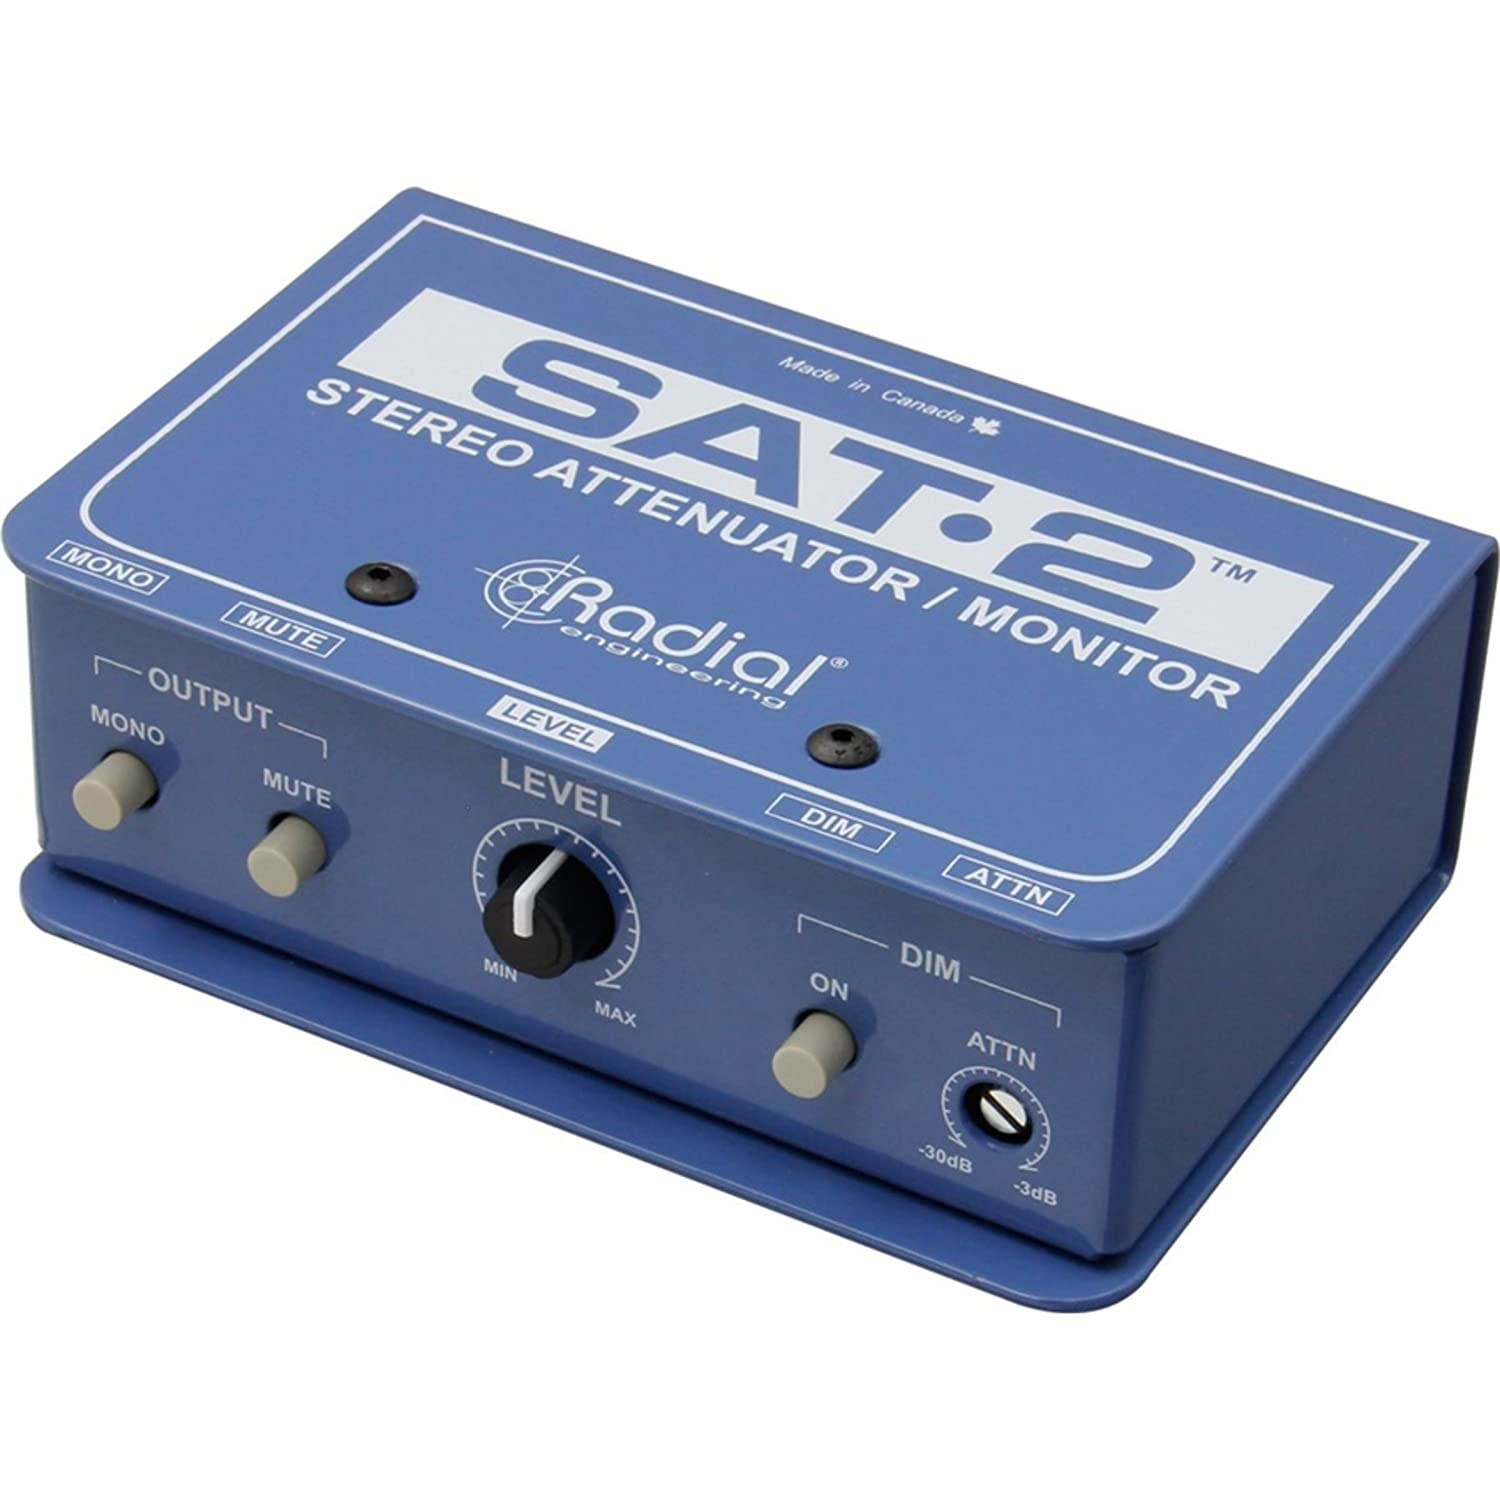 Radial Engineering SAT-2 - Stereo Audio Attenuator & Monitor Controller